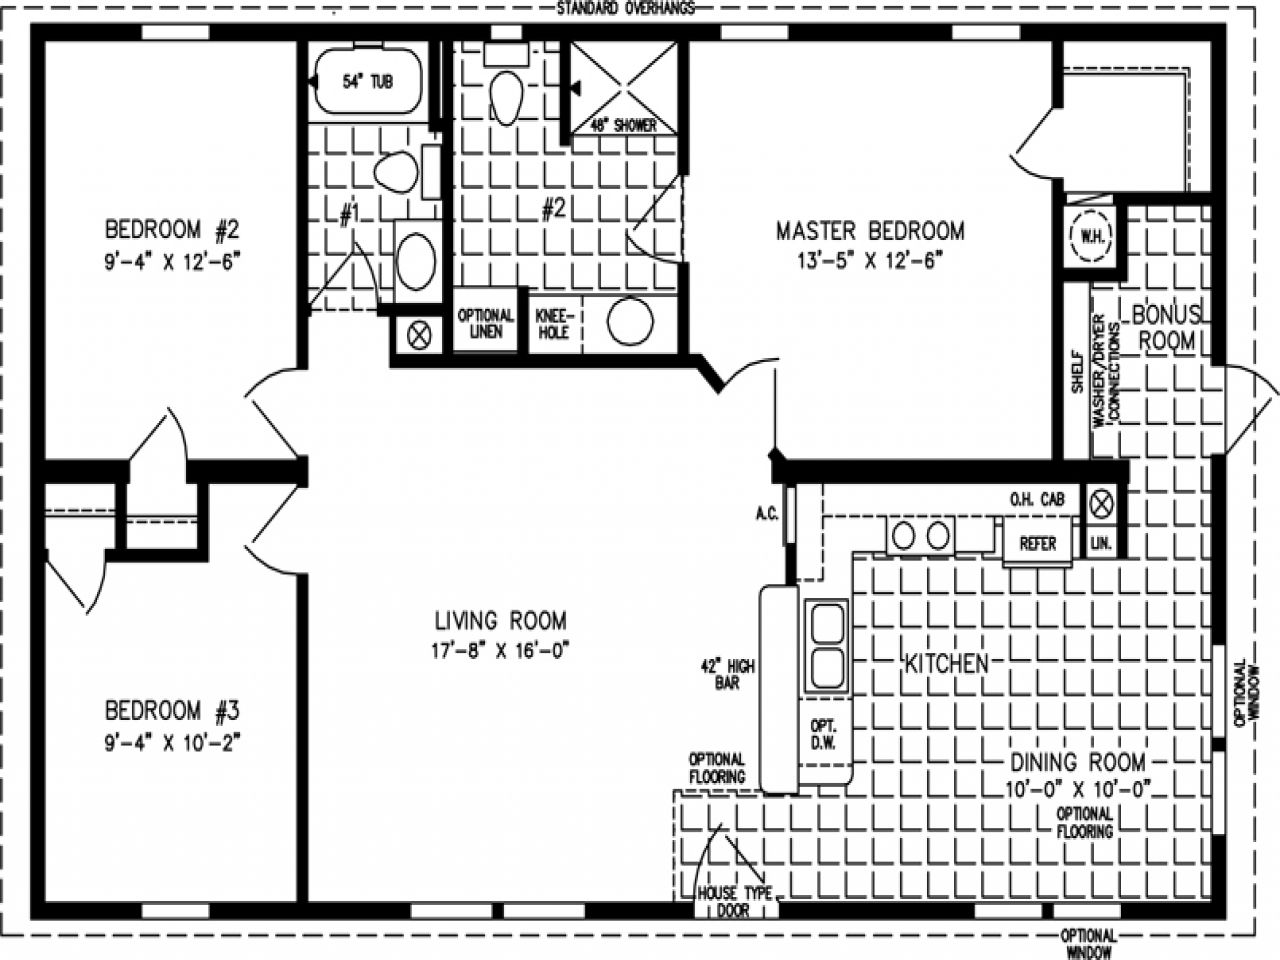 Captivating House Floor Plans House Floor Plans Under 1000 Sq FT, 1000 Square Foot .